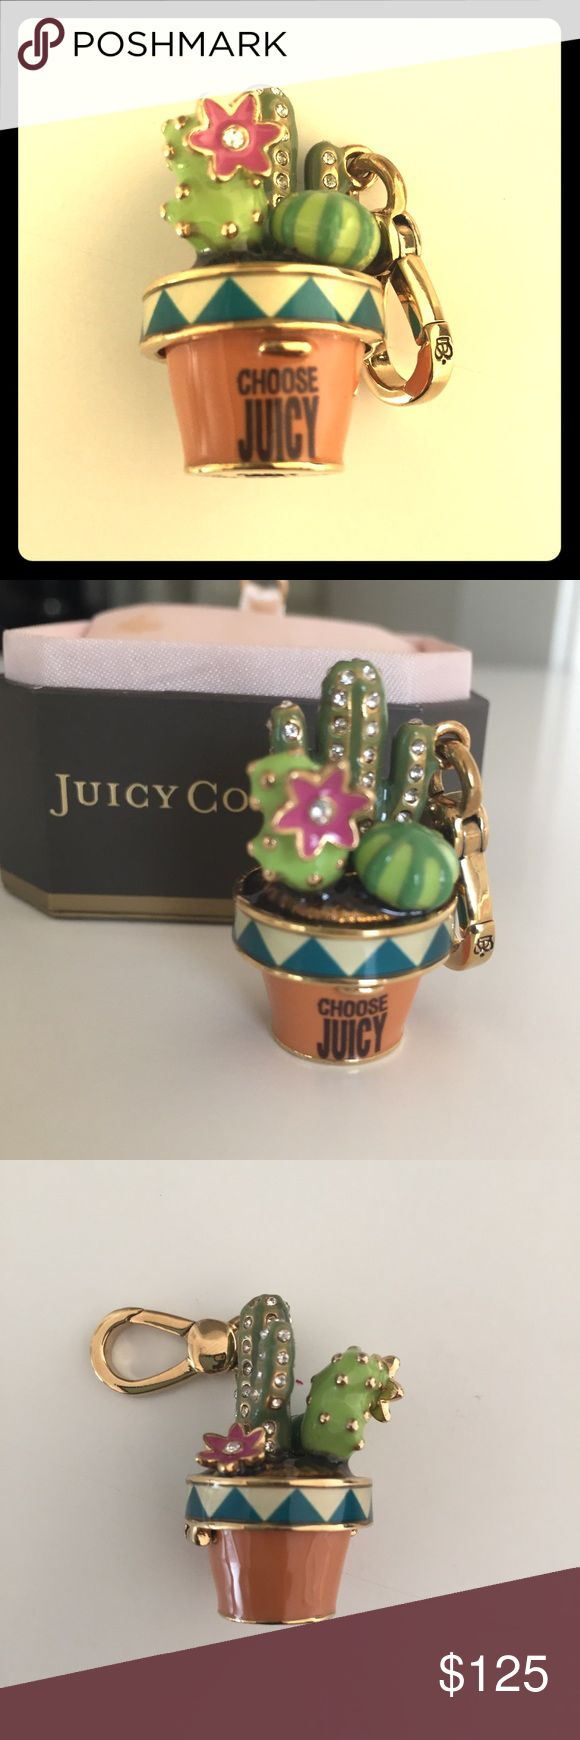 Juicy Couture Cactus Charm RARE This Cactus  Charm is Adorable! Authentic JUICY COUTURE A Miniature Ode to Your Personal Style Condition: Brand New in Original Tagged Juicy Couture (but Box but box has some spotting on it) Closure Style: Lobster Clasp Details: Gold Plated Brass with Juicy Crown on Clasp, Cactus opens up       A Juicy Charm Can Go Anywhere You Go! Add it to your Charm Bracelet, Hang it on your Purse, Clip it onto your Necklace, Your Cell Phone, Your Back-Pack, Etc.  Show Your…